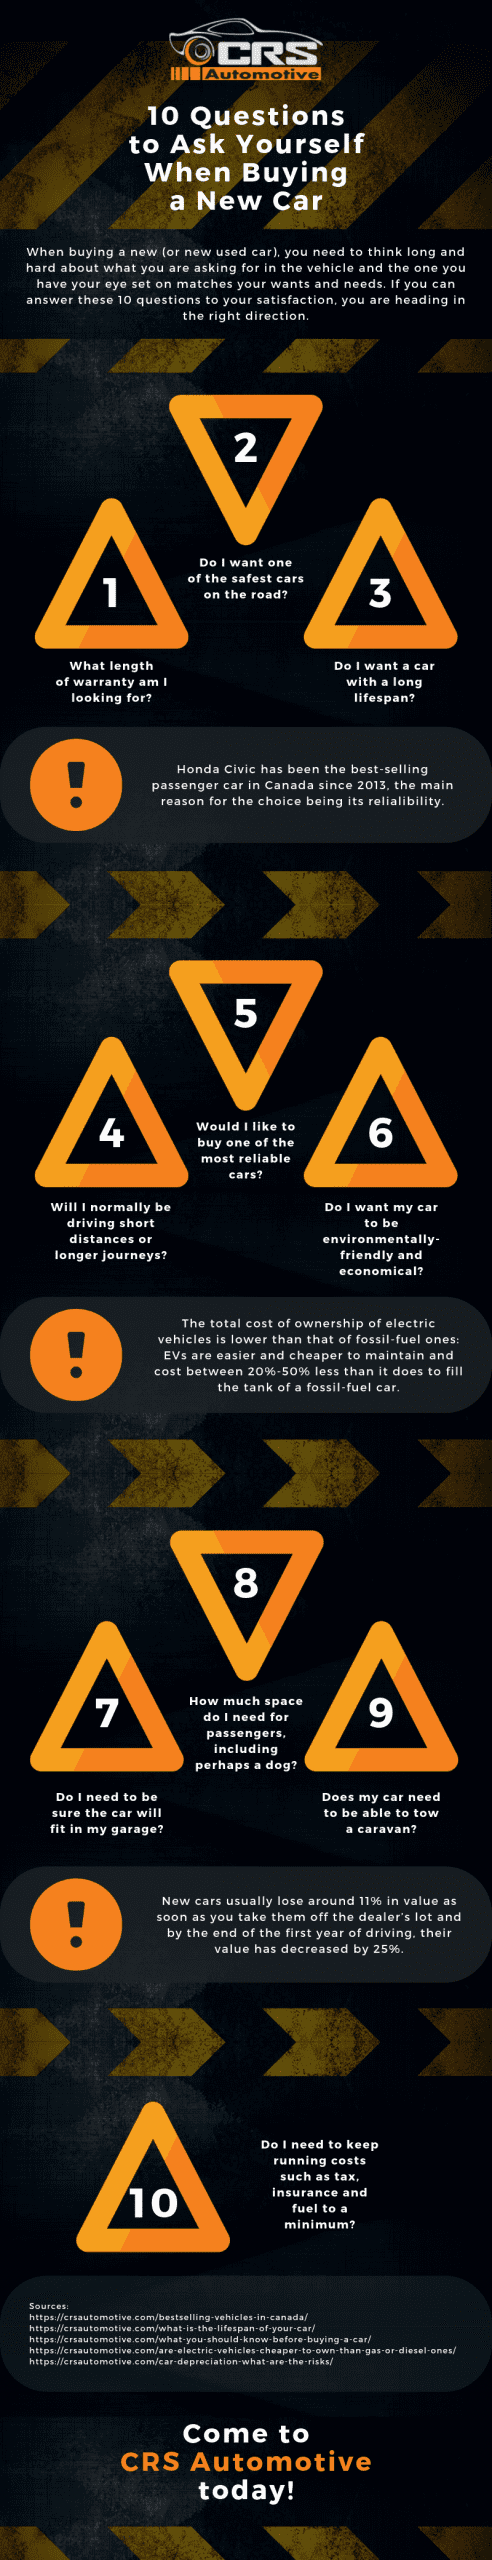 10 Questions to Ask Yourself When Buying a New Car Infographic